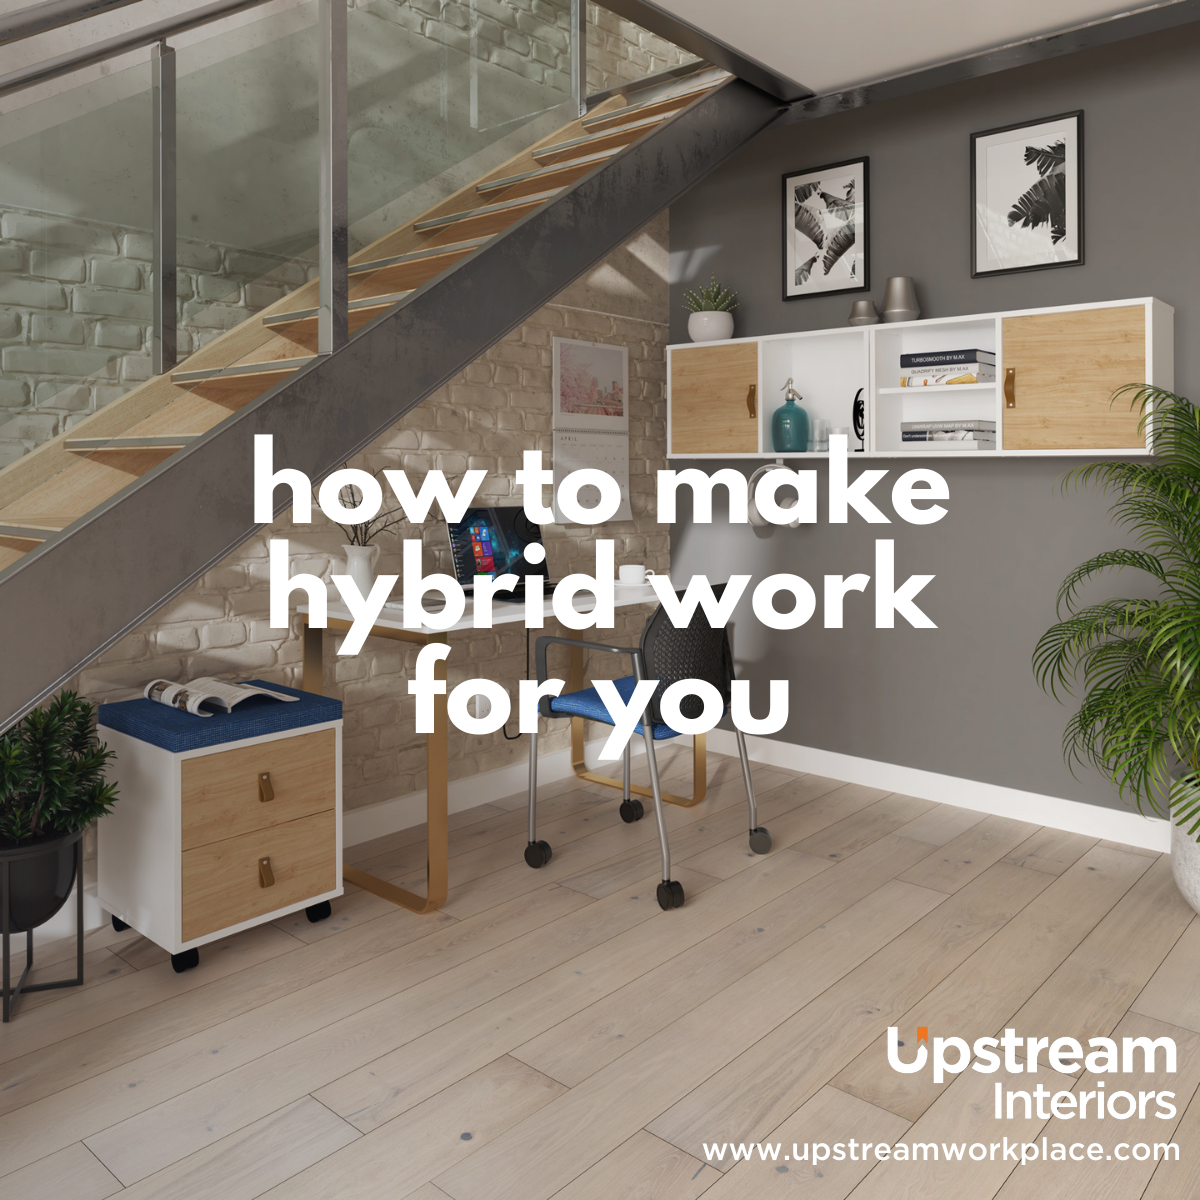 How to make hybrid work for you